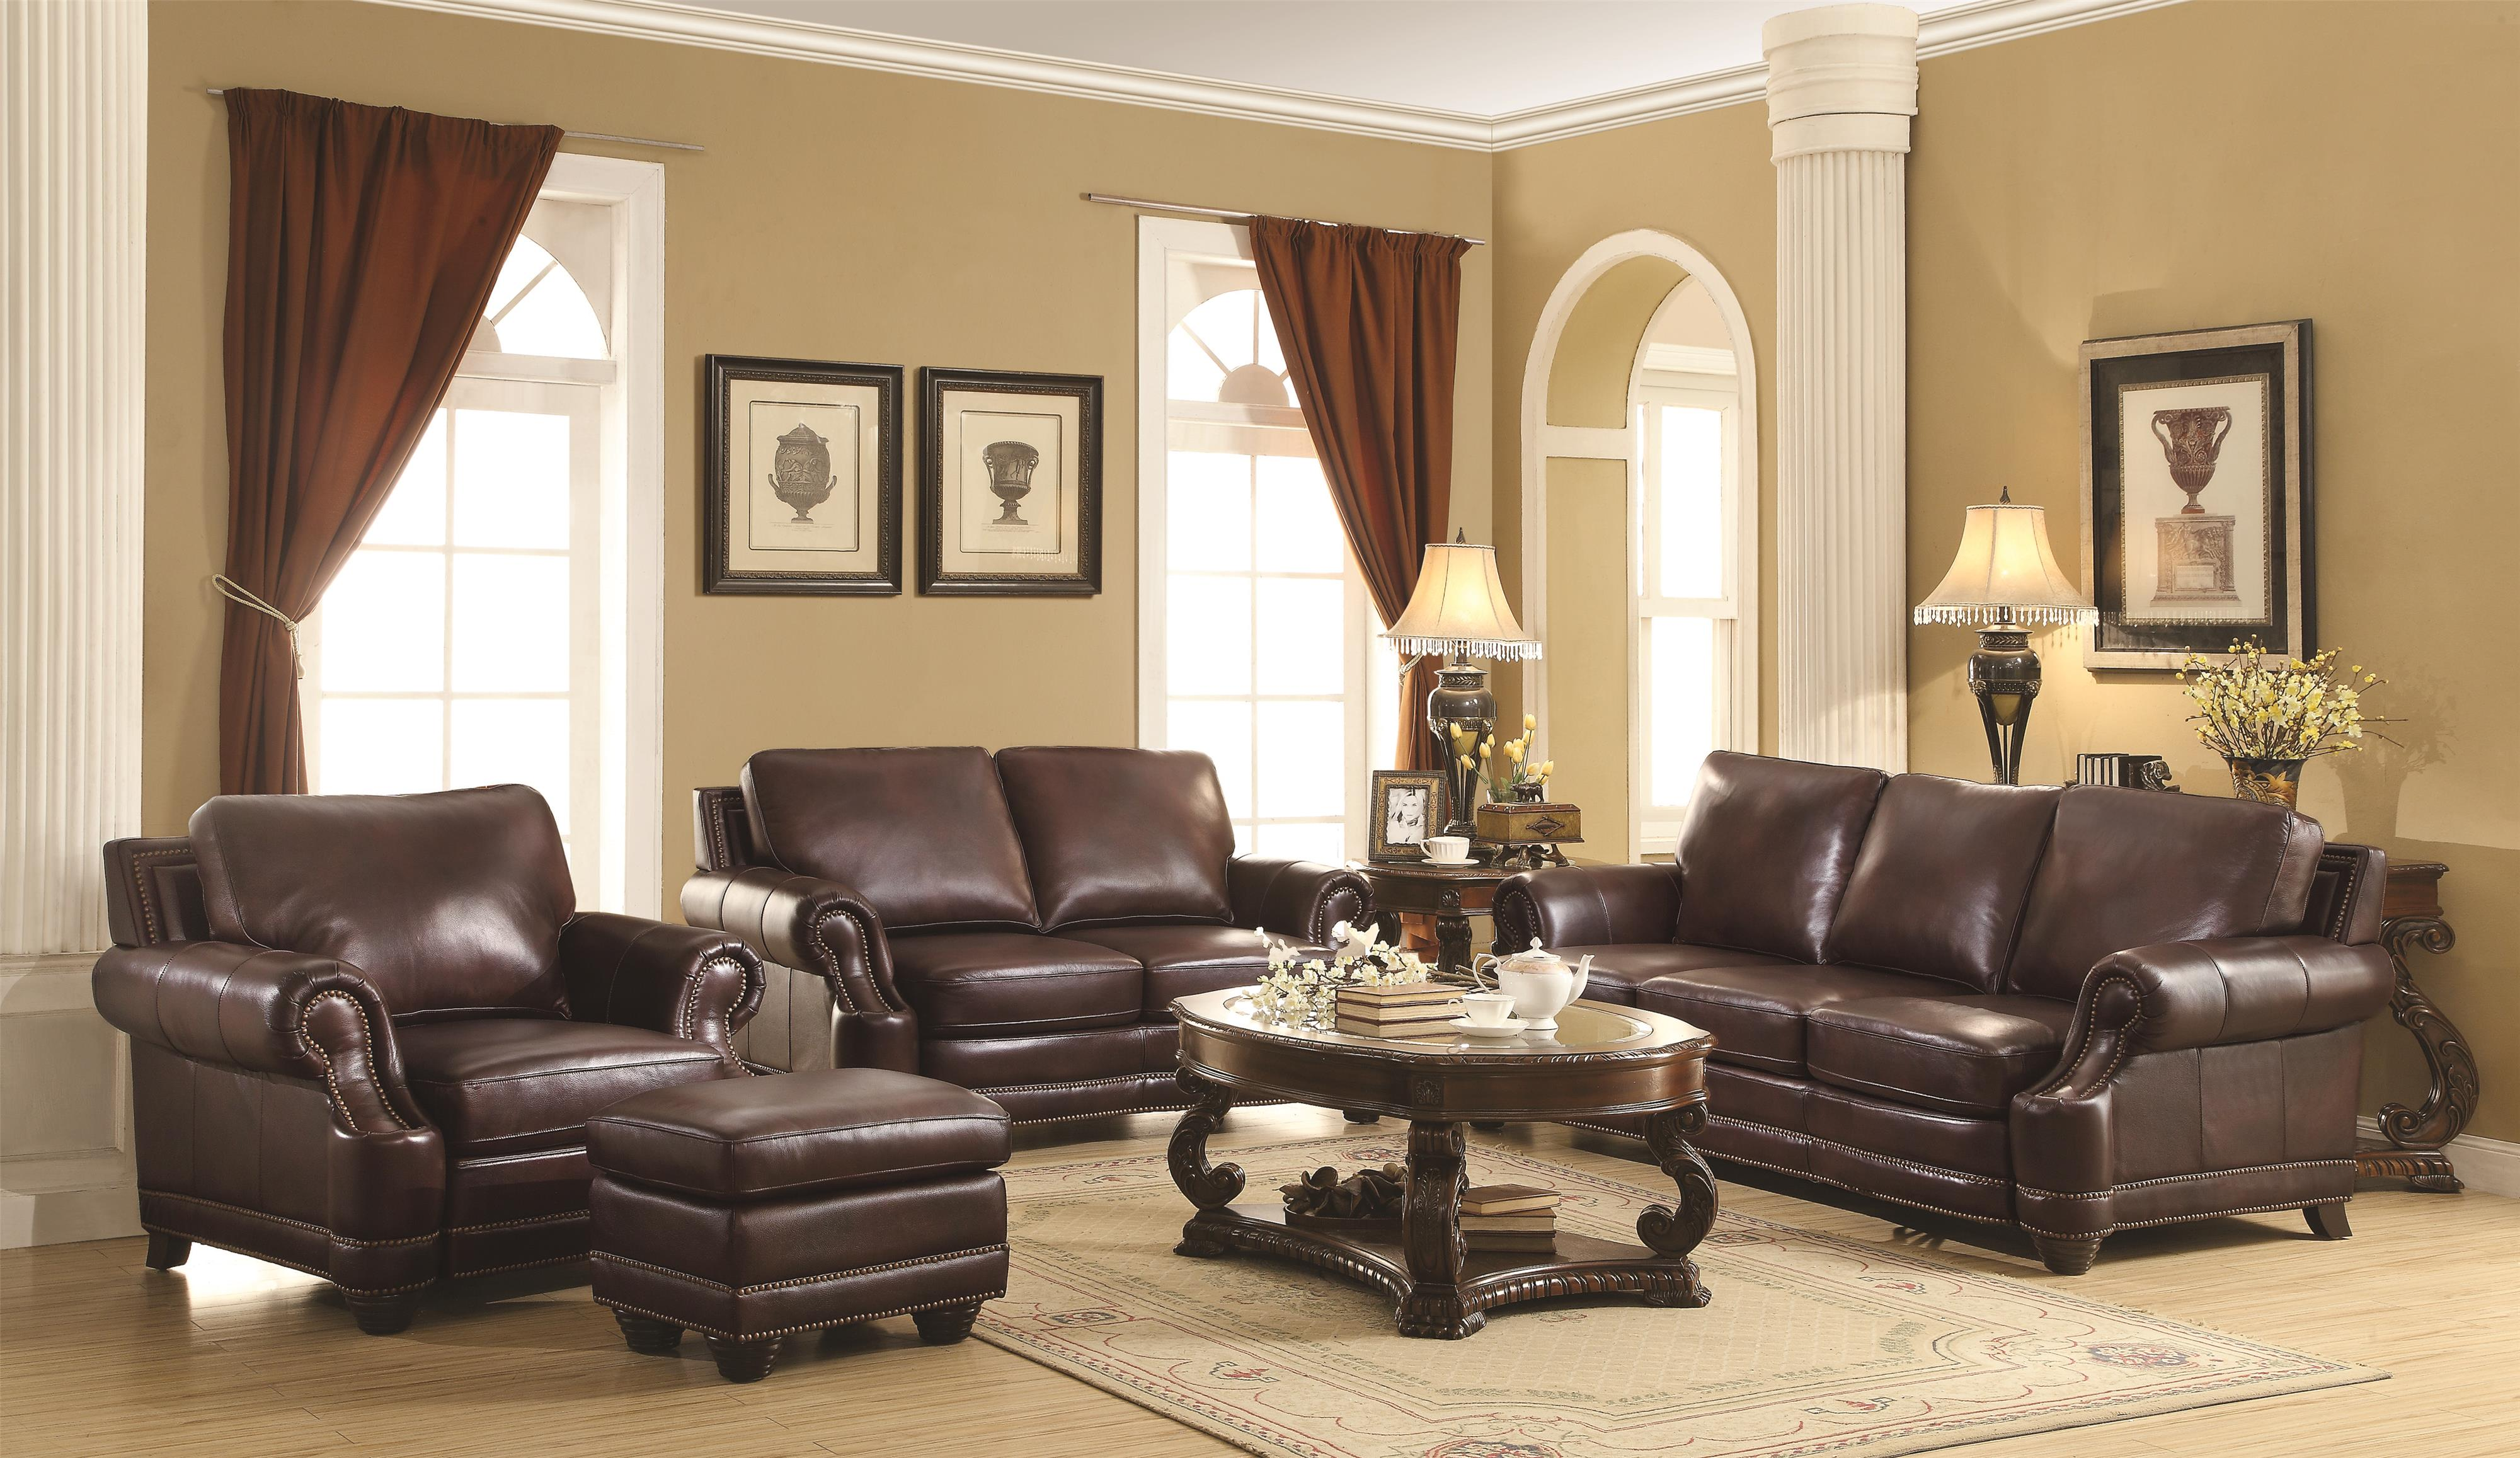 Crawford Traditional 100% Leather Sofa with Scoop Arms and